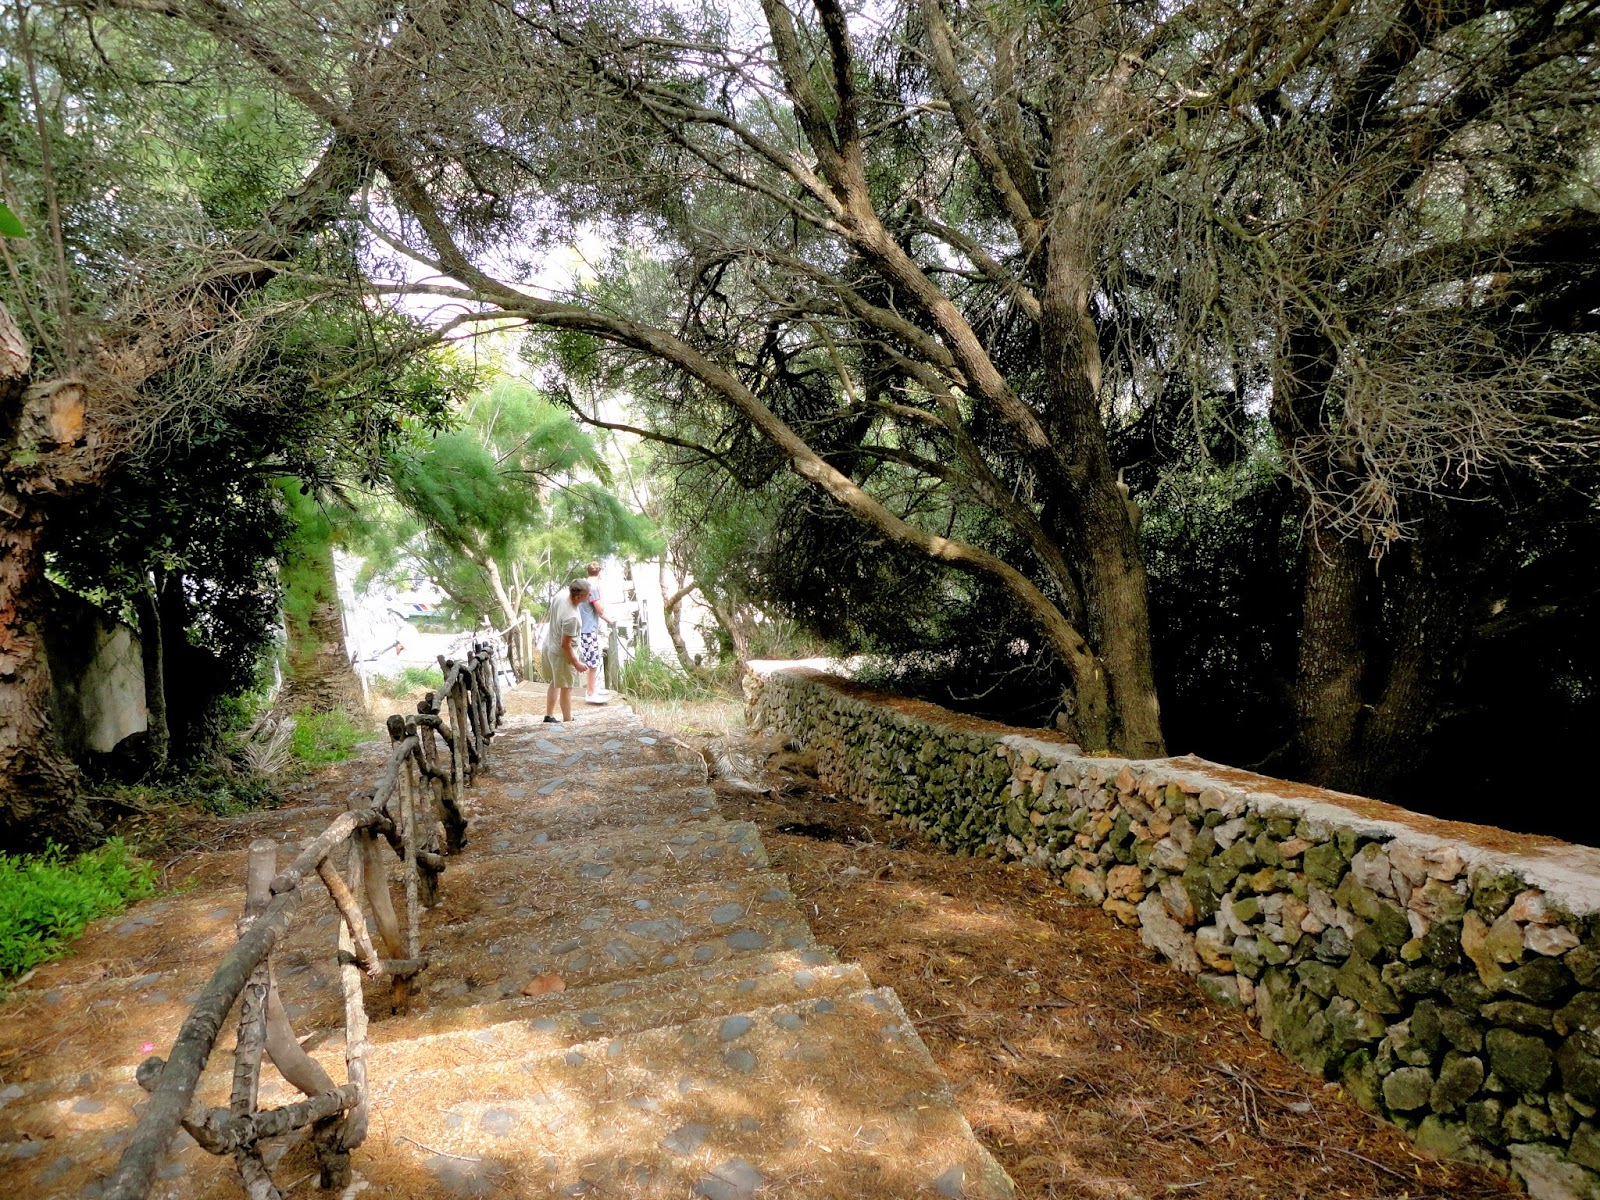 Travel Inspiration | Menorca, Spain | quiet rural forest path surrounded by trees